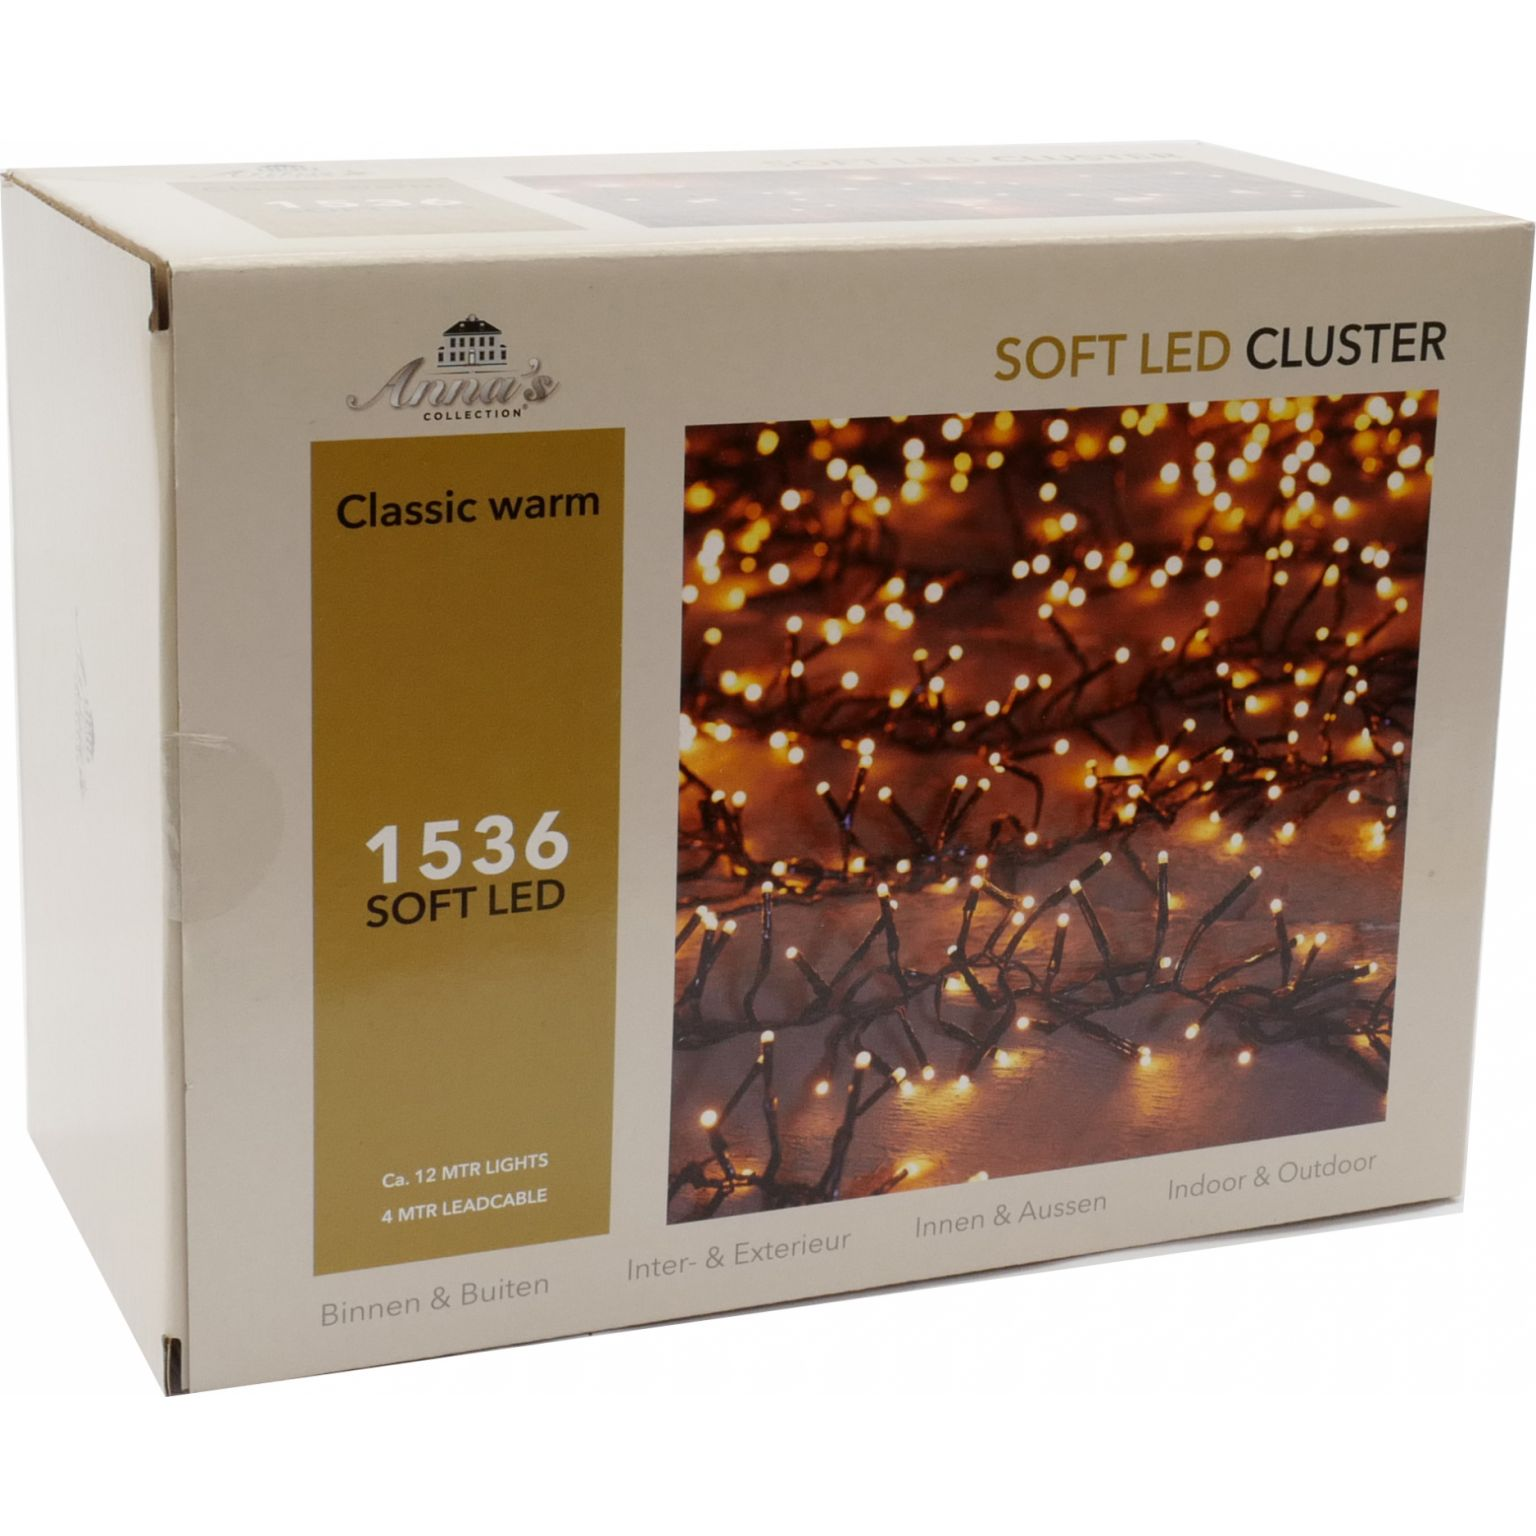 Clusterverlichting 1536-lamps soft-LED \'classic warm ...